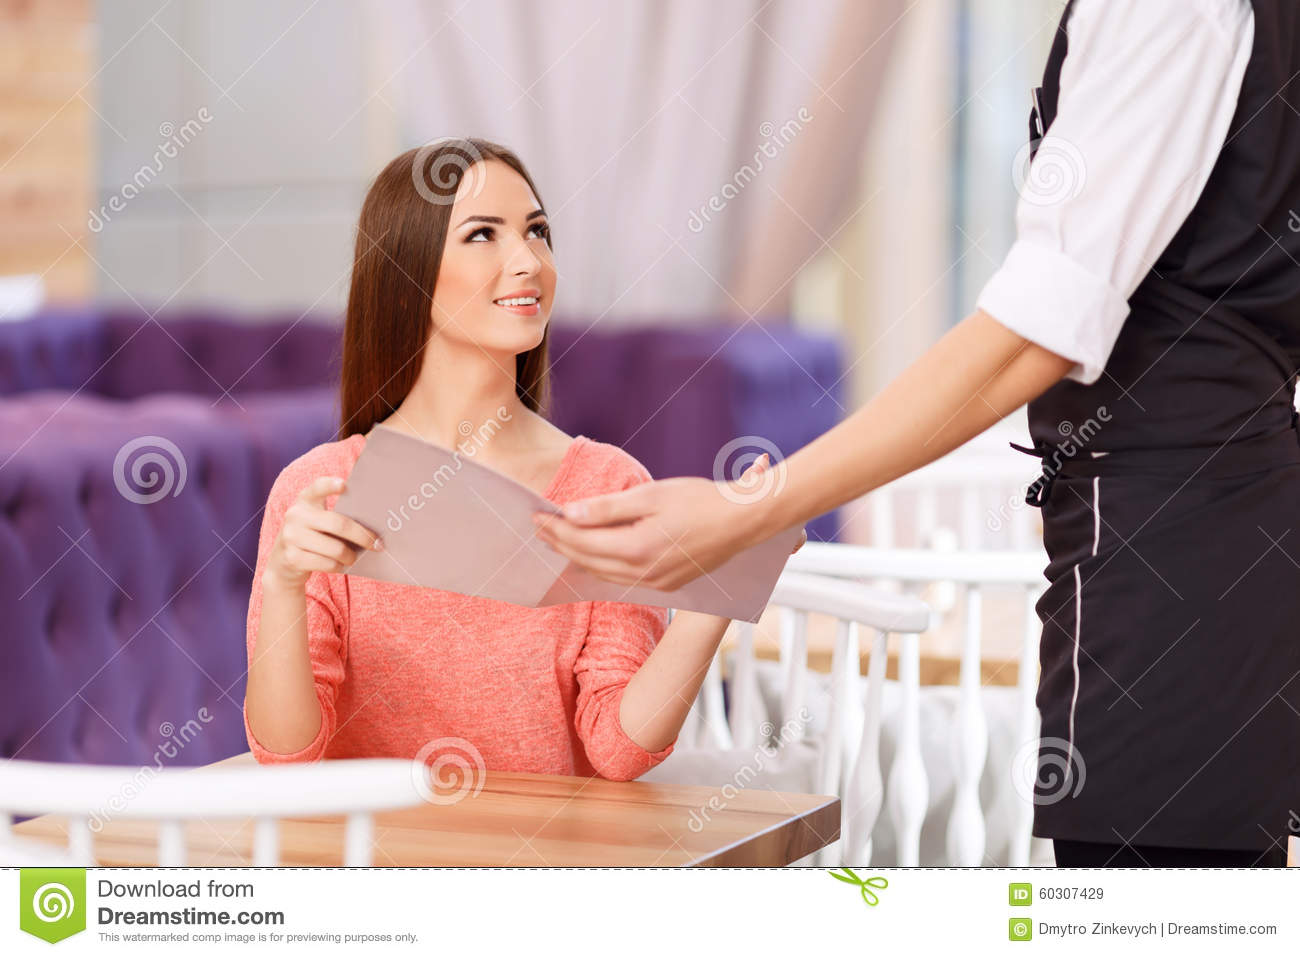 Appealing girl sitting at the table and getting menu from the waiter